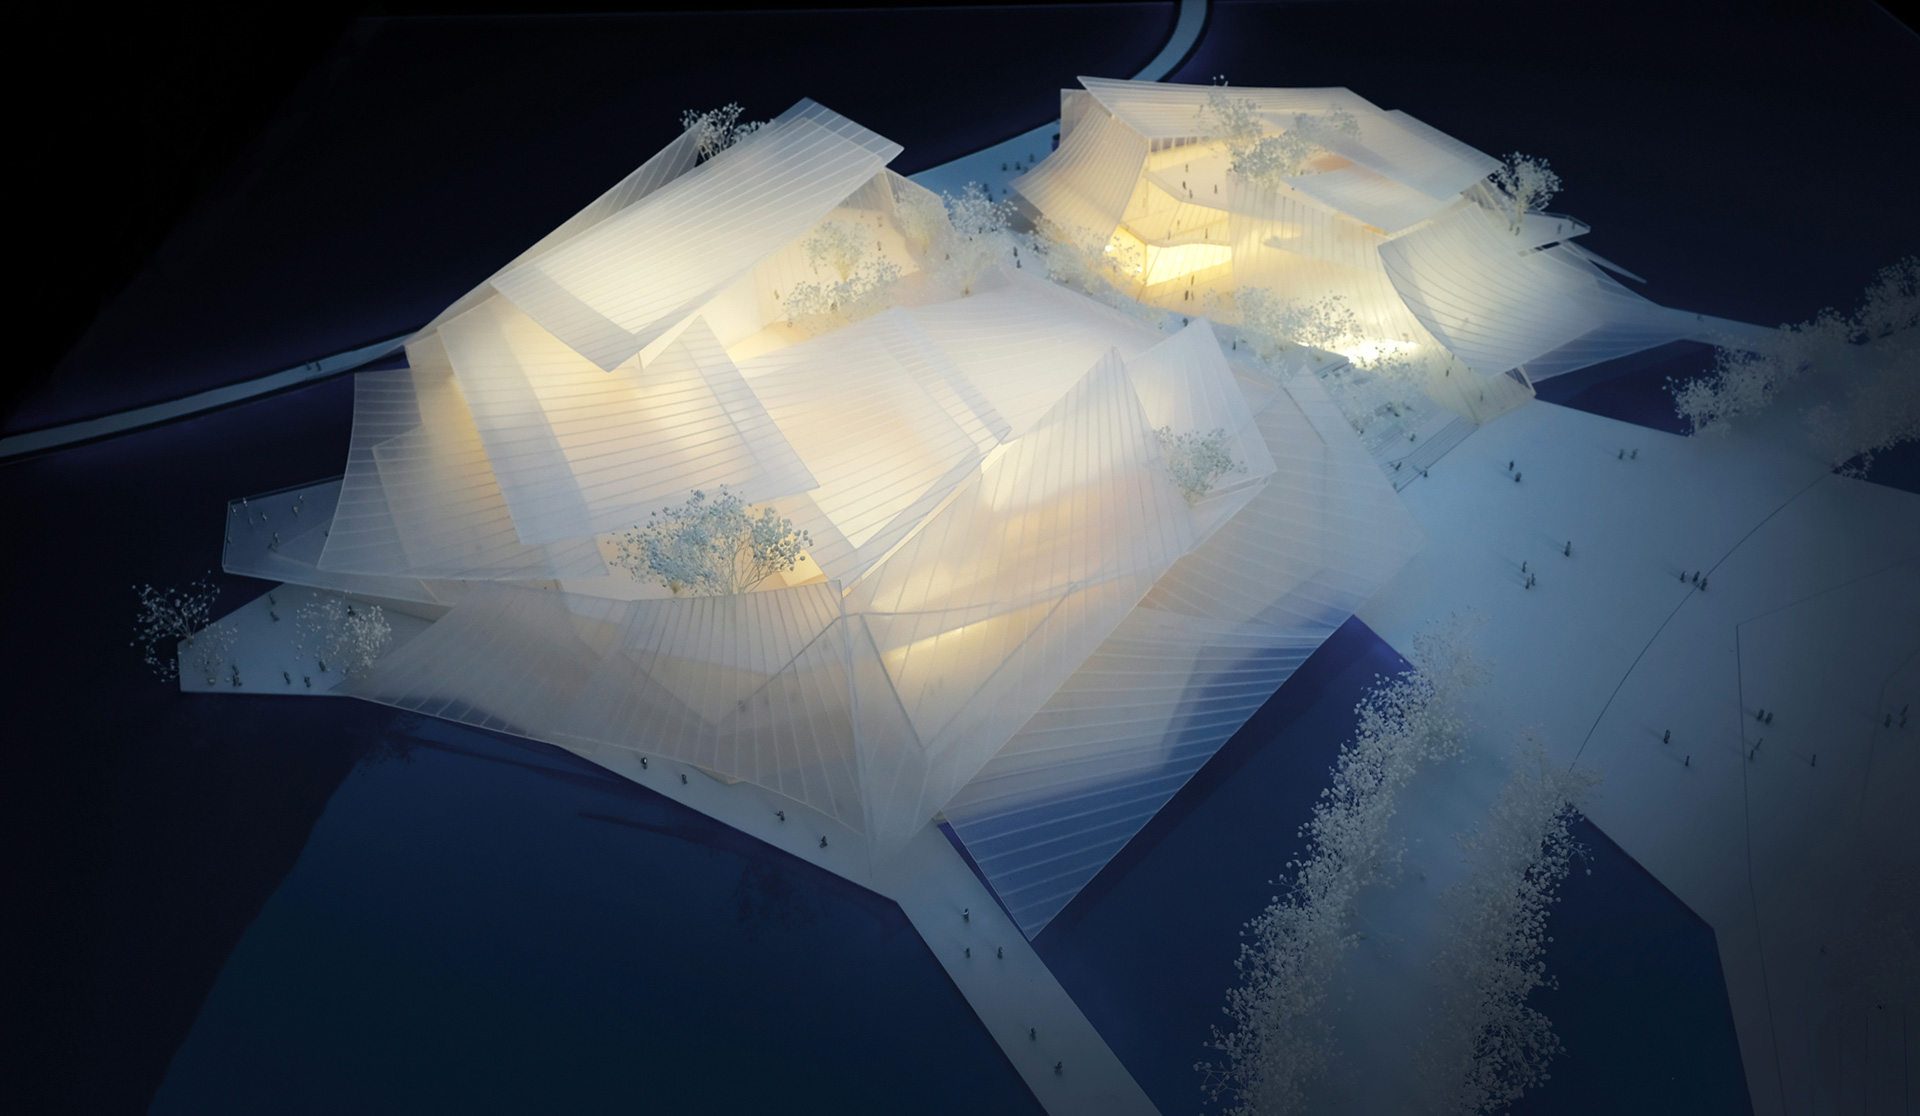 The structure is covered with a canopy of light fabric-like glass sails | Yiwu Grand Theater | MAD Architects | STIR